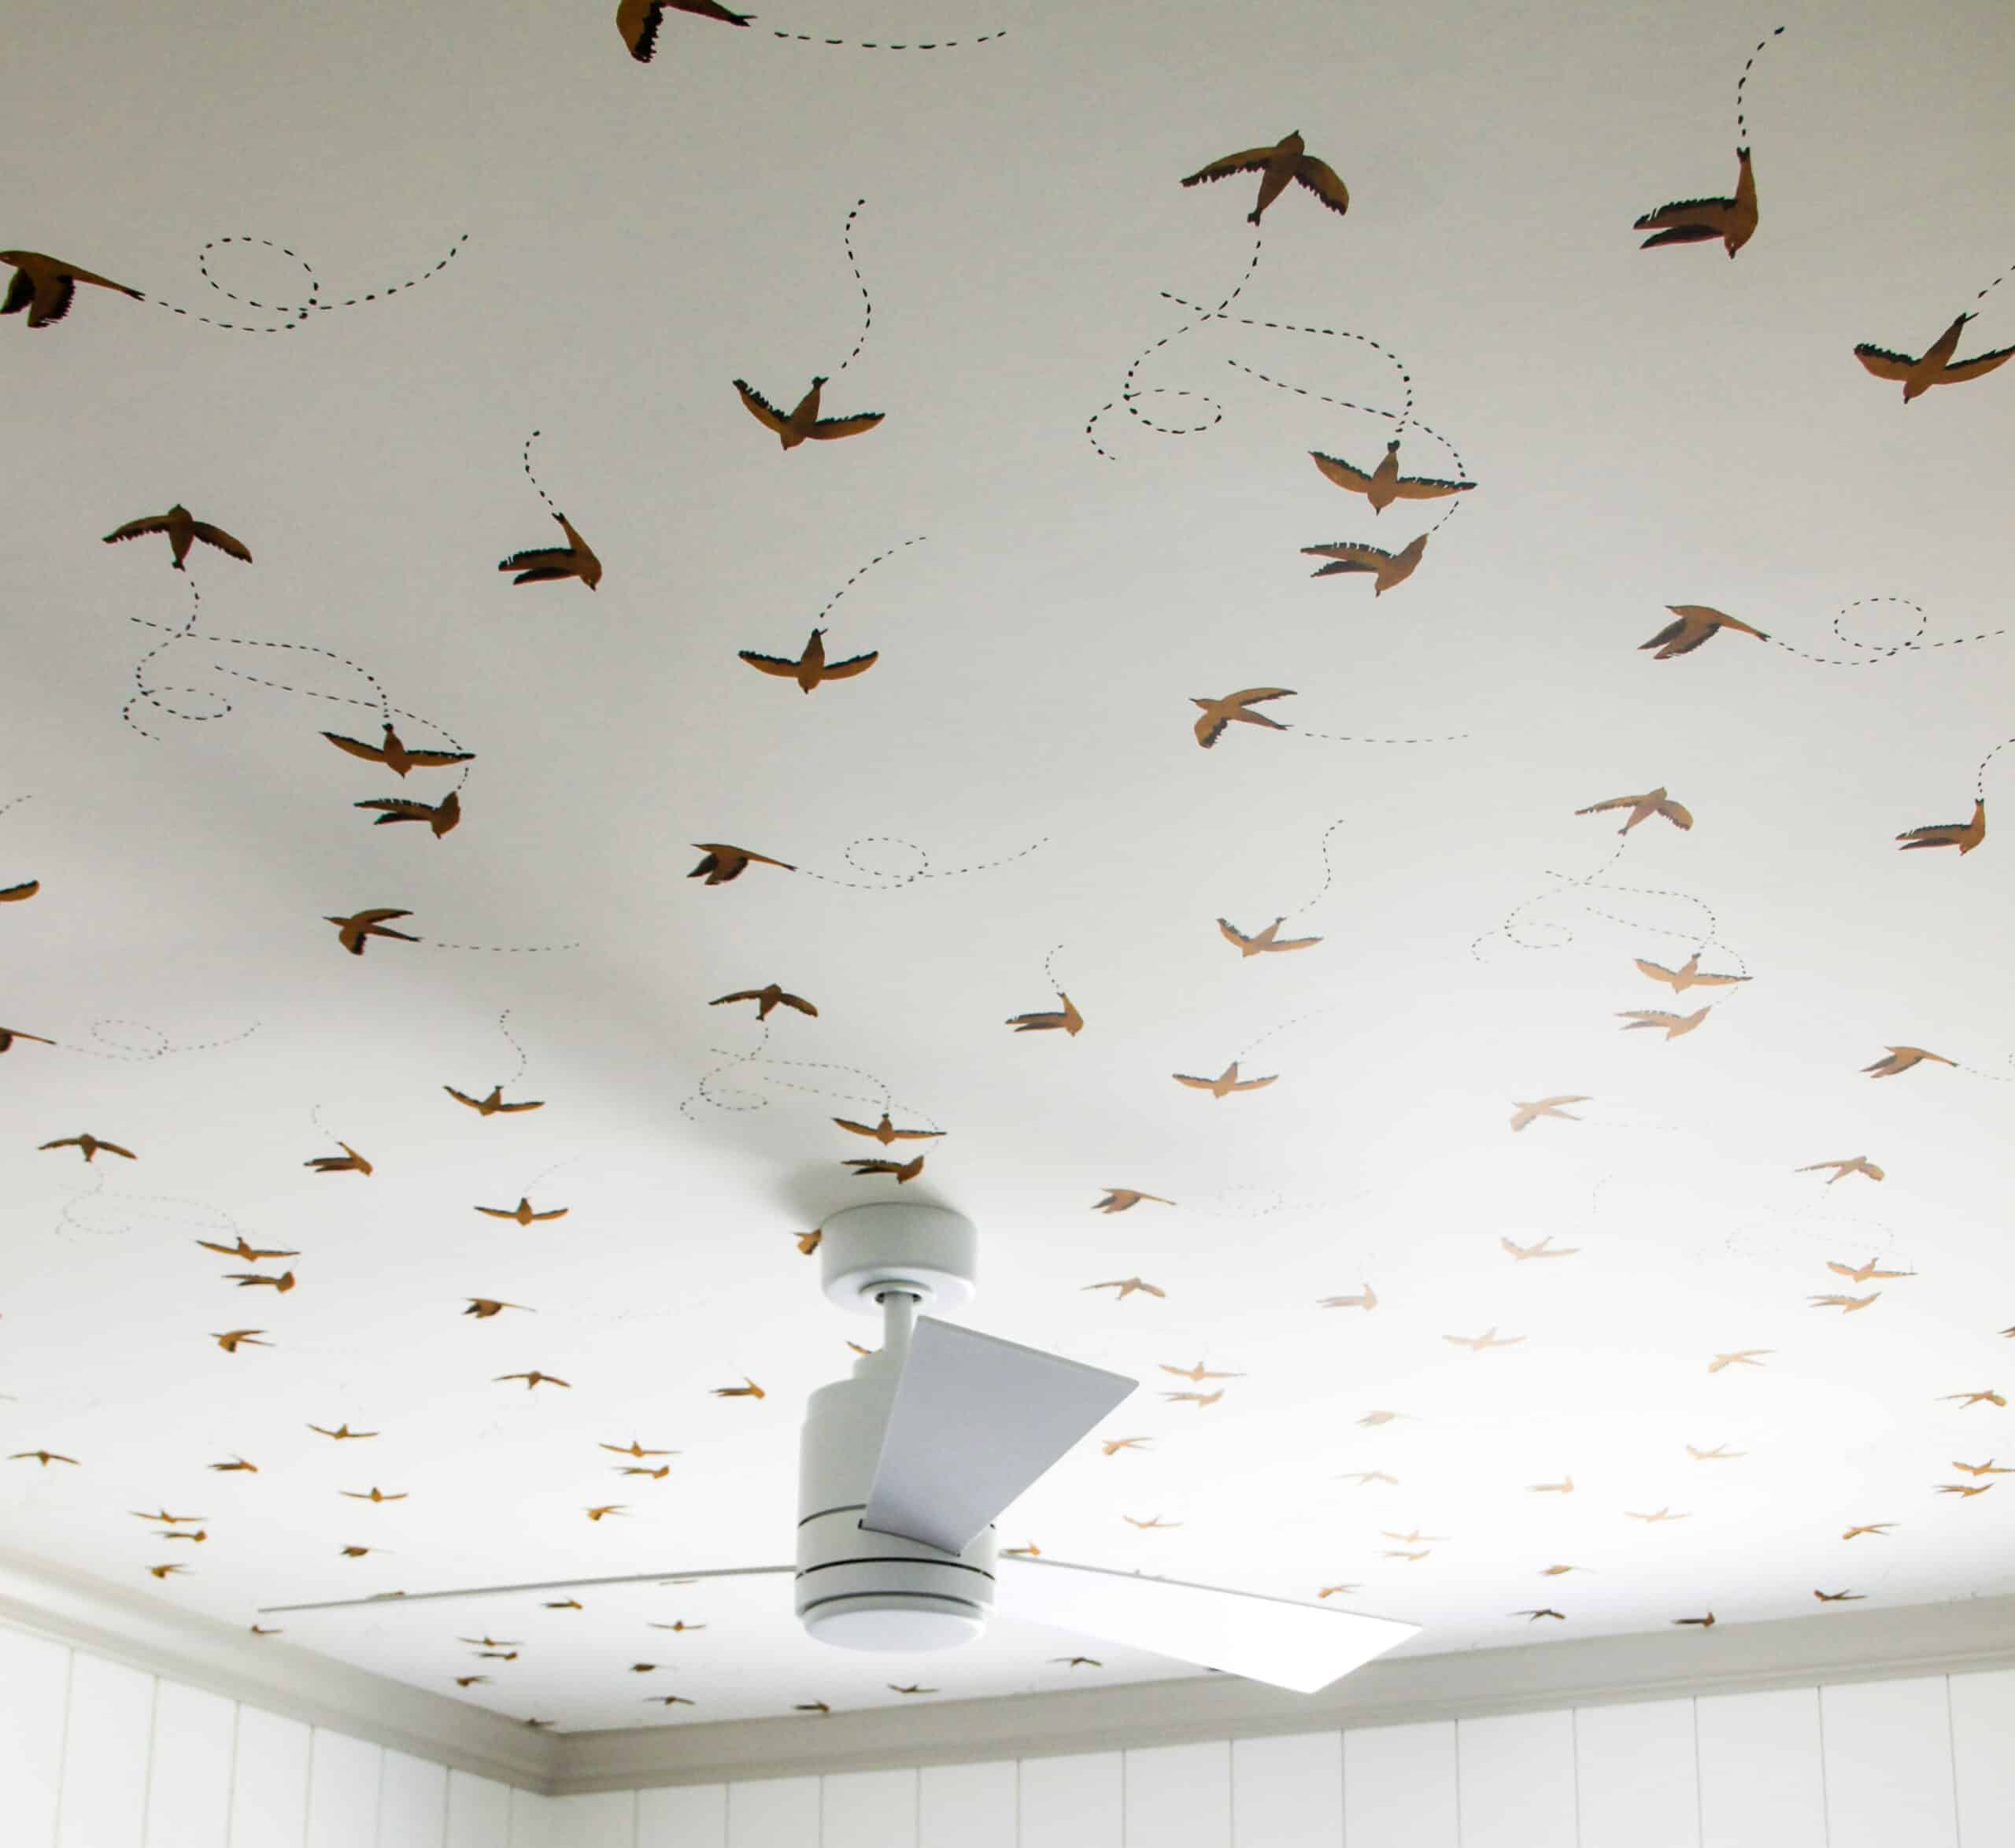 Wallpapered bedroom ceiling with fan